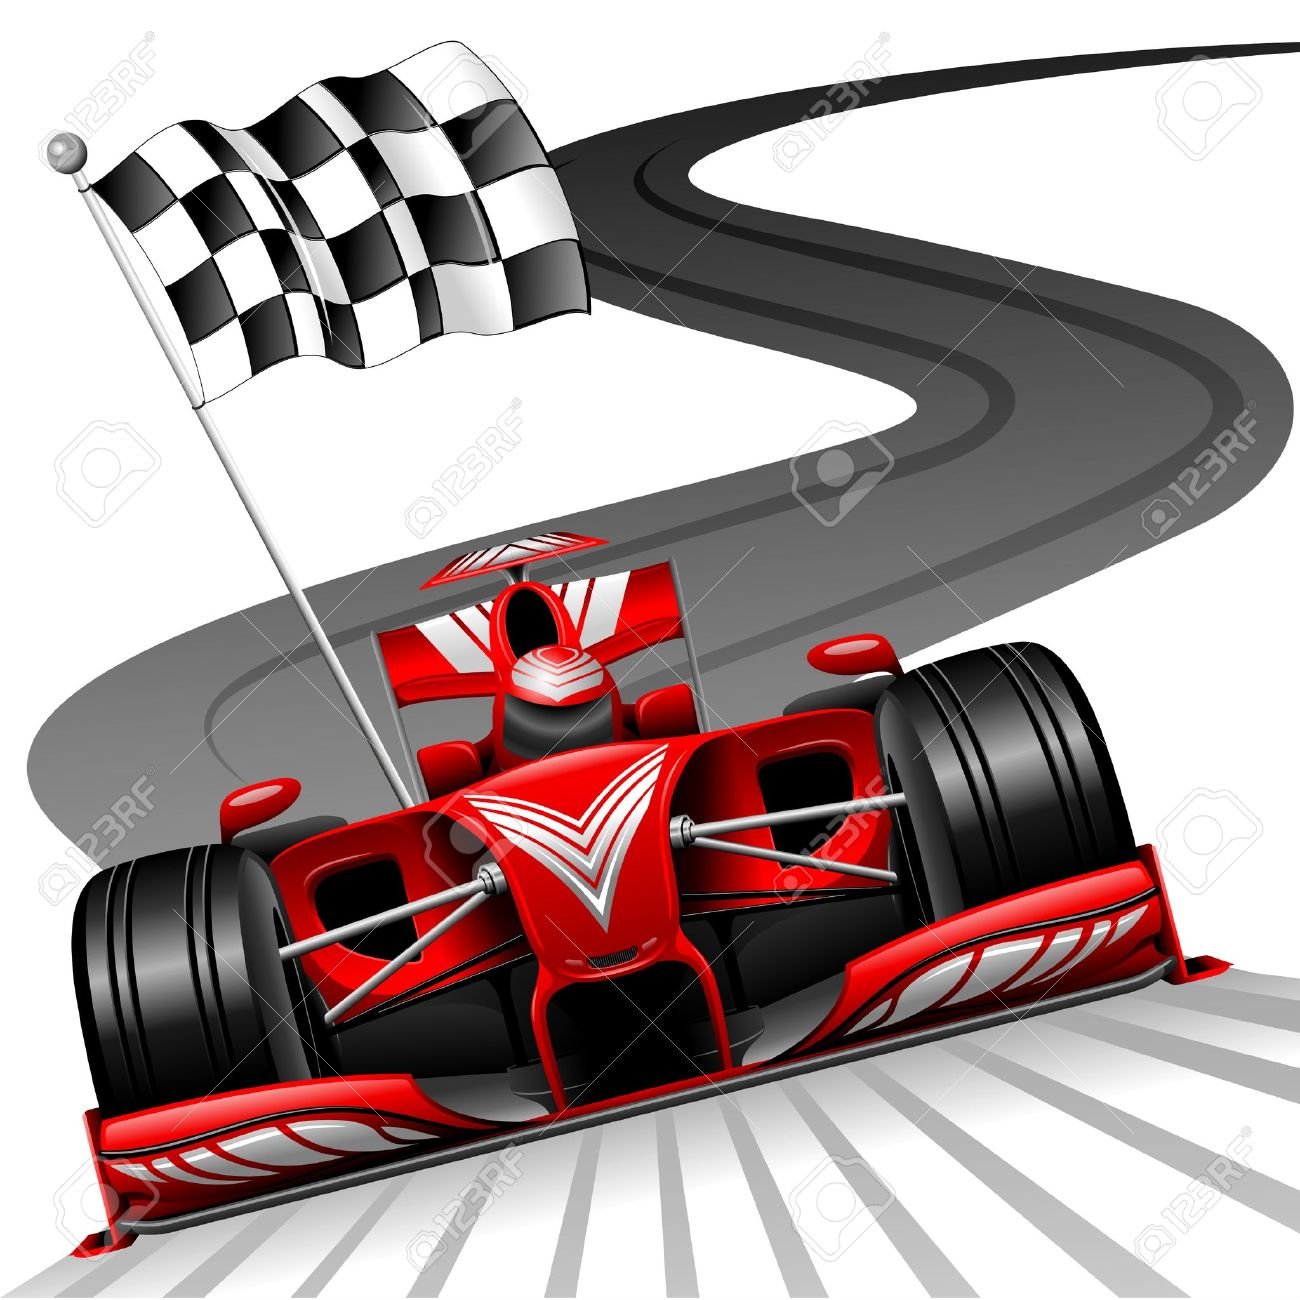 Formula 1 Red Car on Race Track Stock Vector - 30218776